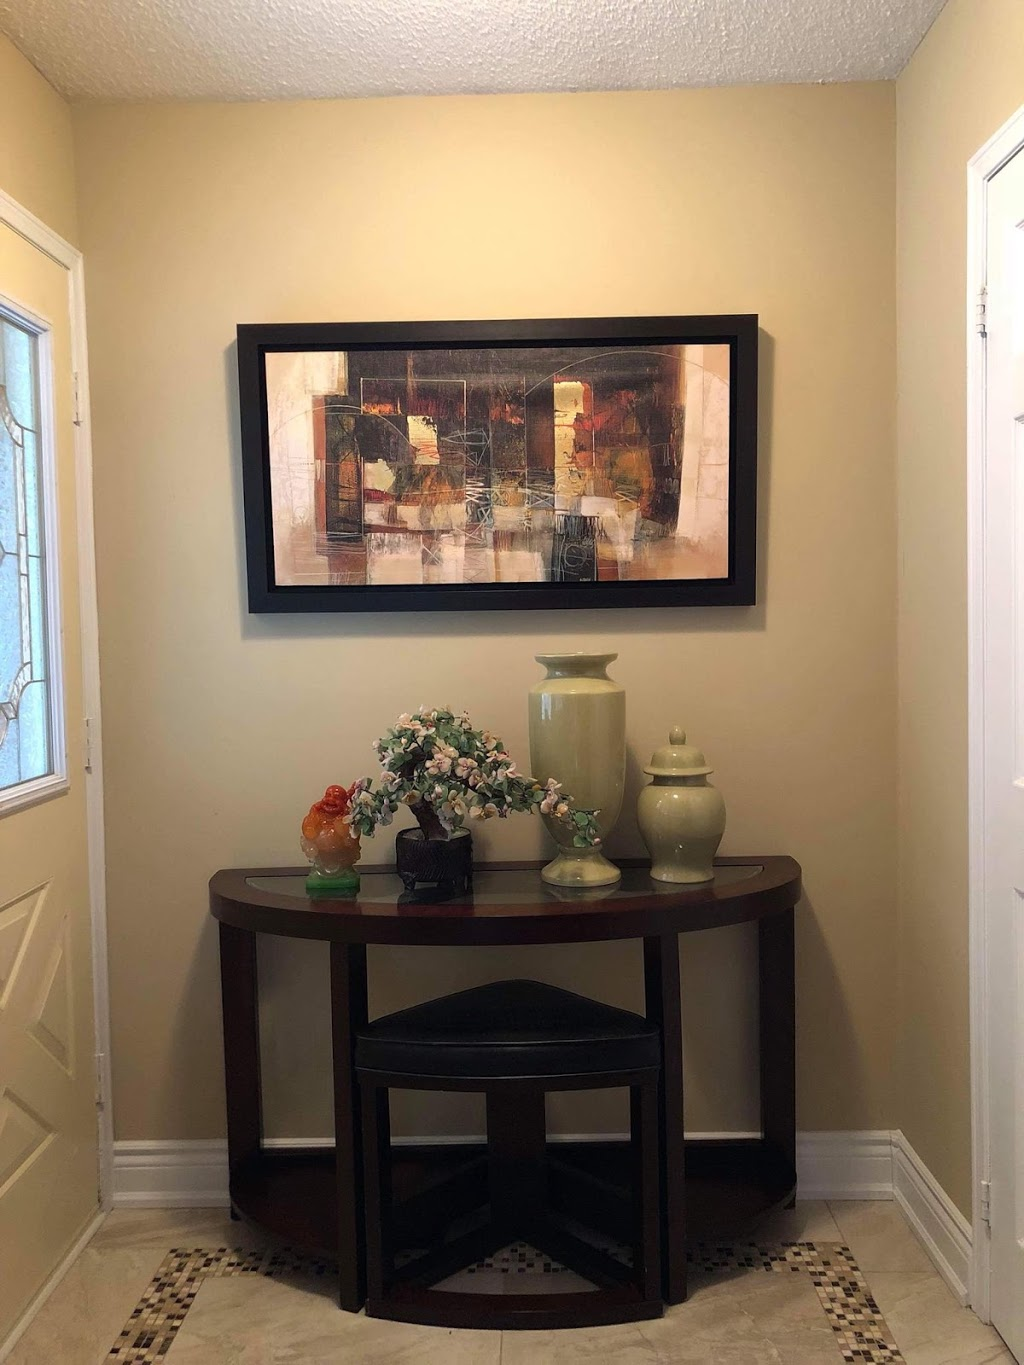 Call-John House Painting and Handyman Services | home goods store | 61 Manett Crescent, Brampton, ON L6X 4X5, Canada | 4163195216 OR +1 416-319-5216